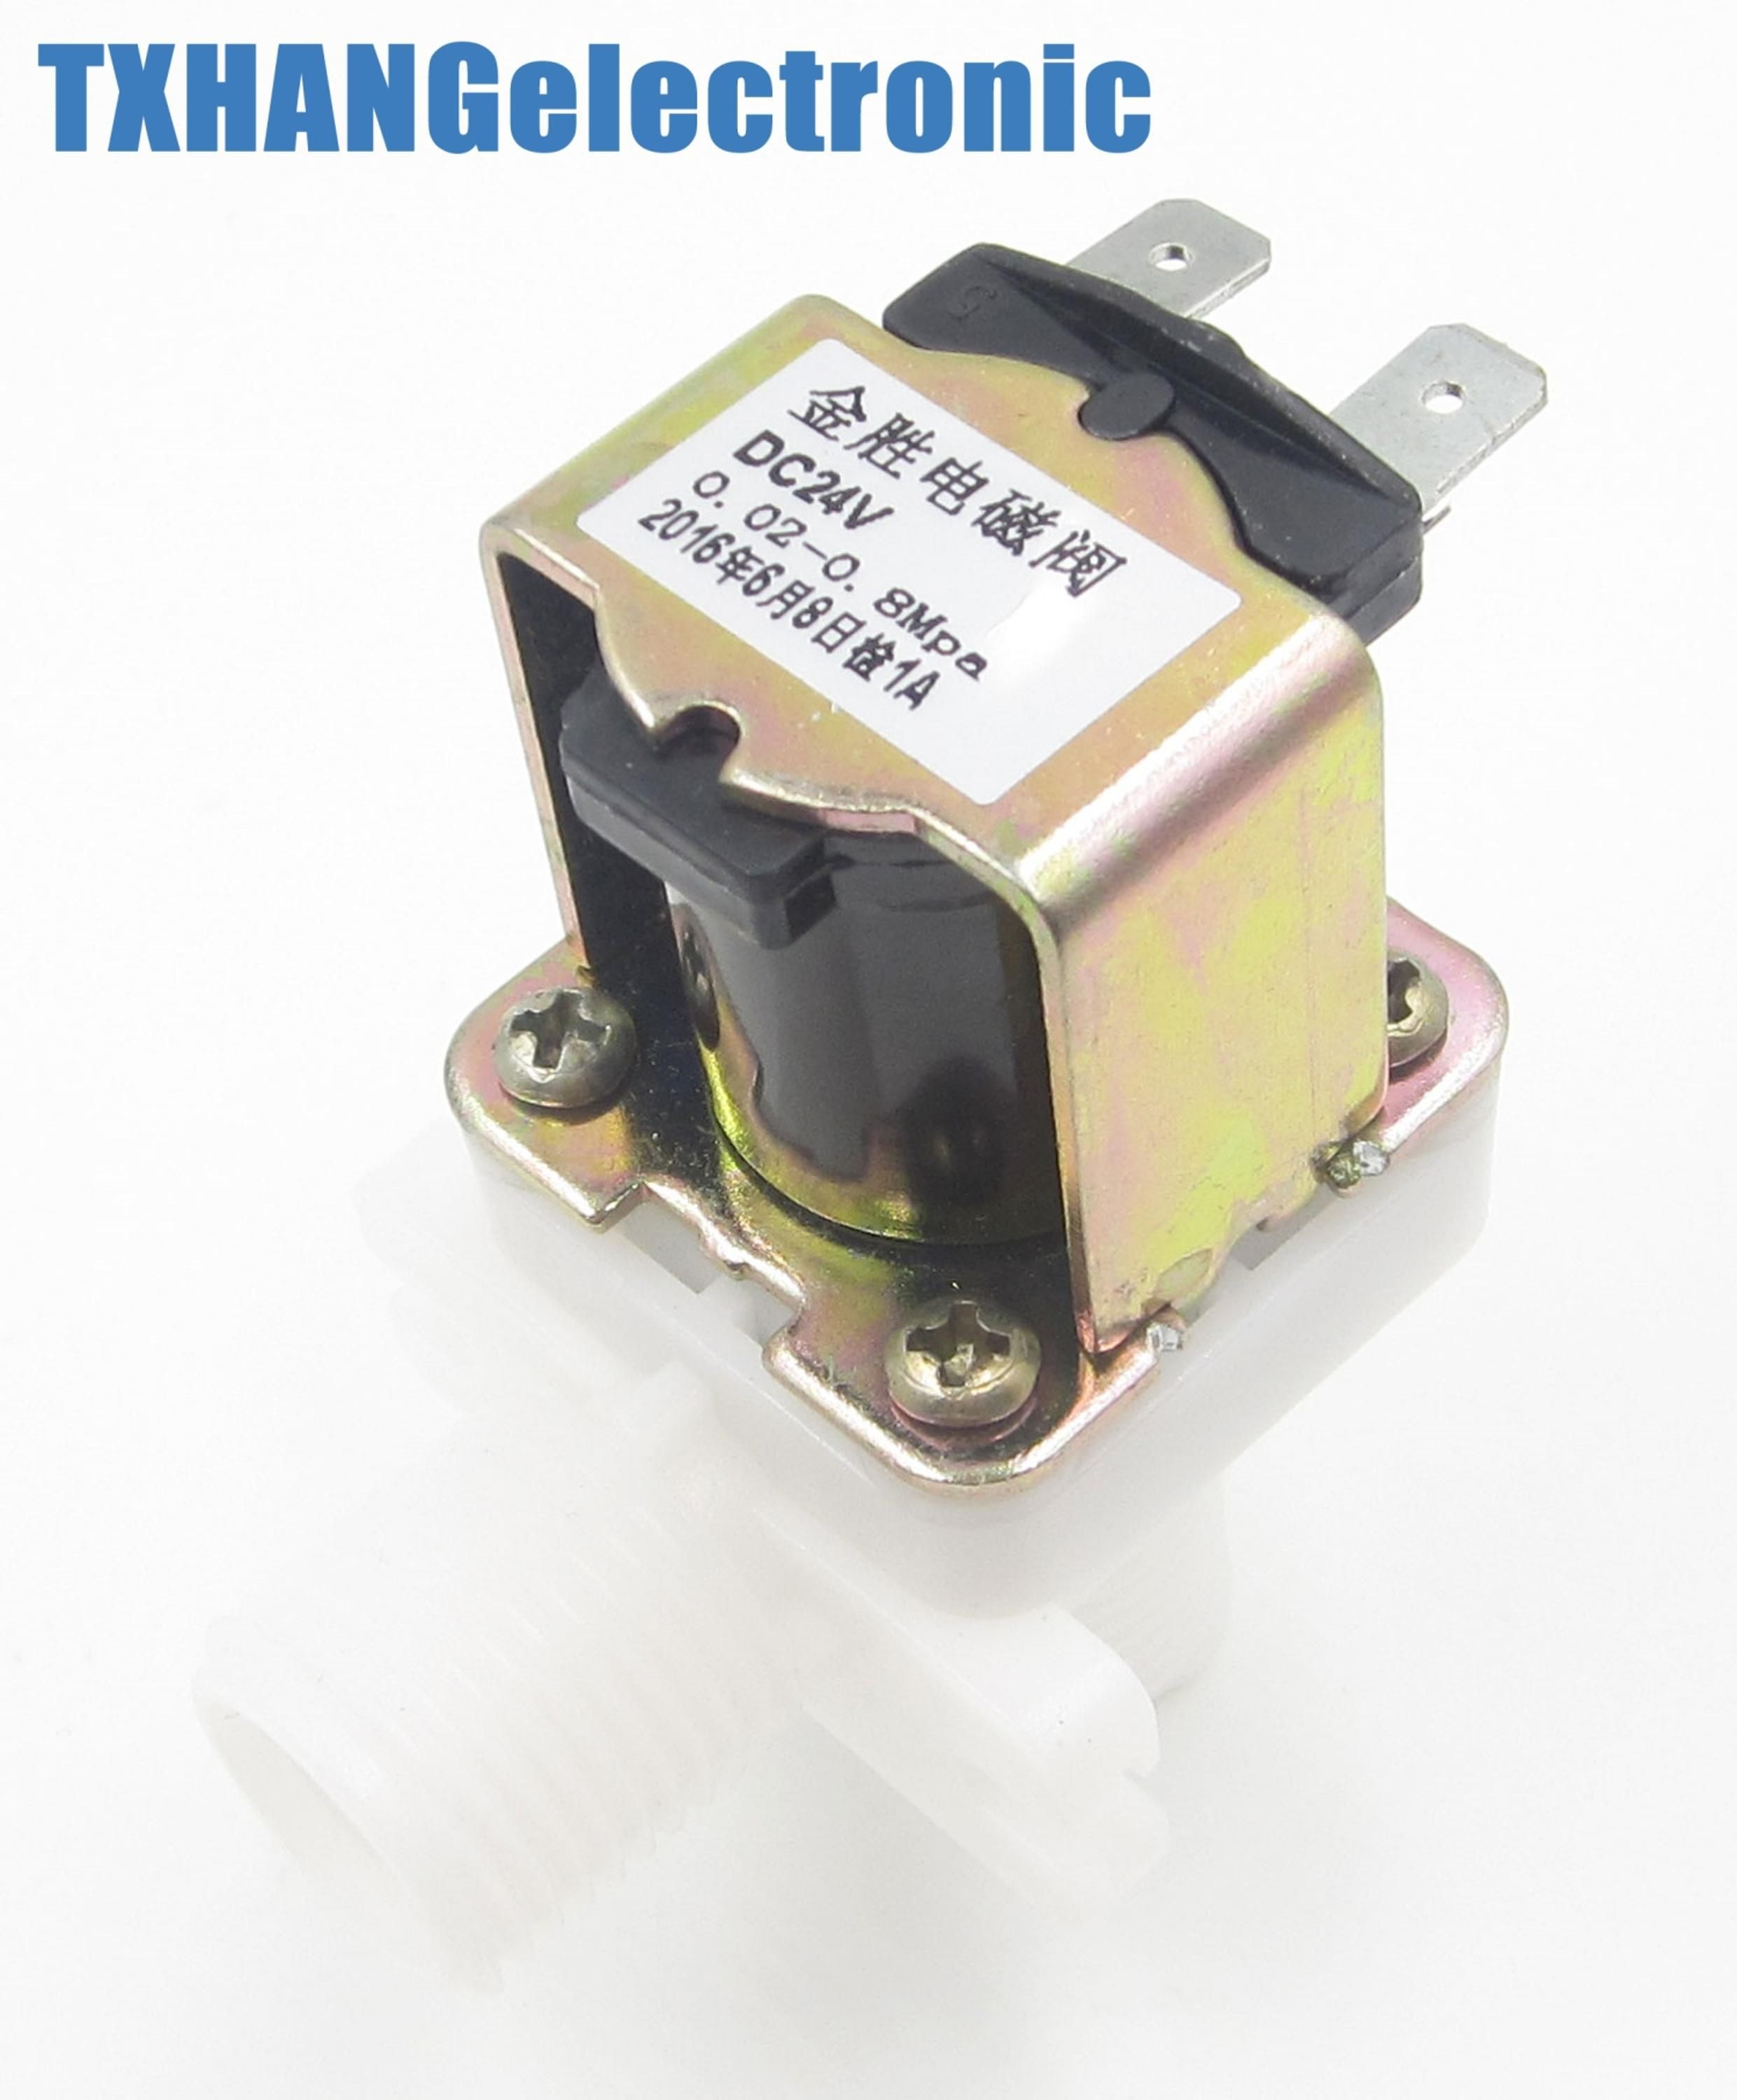 1 2 N C Magnetic N C Electric Solenoid Valve Water Air Inlet Flow Switch Us 4 19 Inlet Valve Electricity